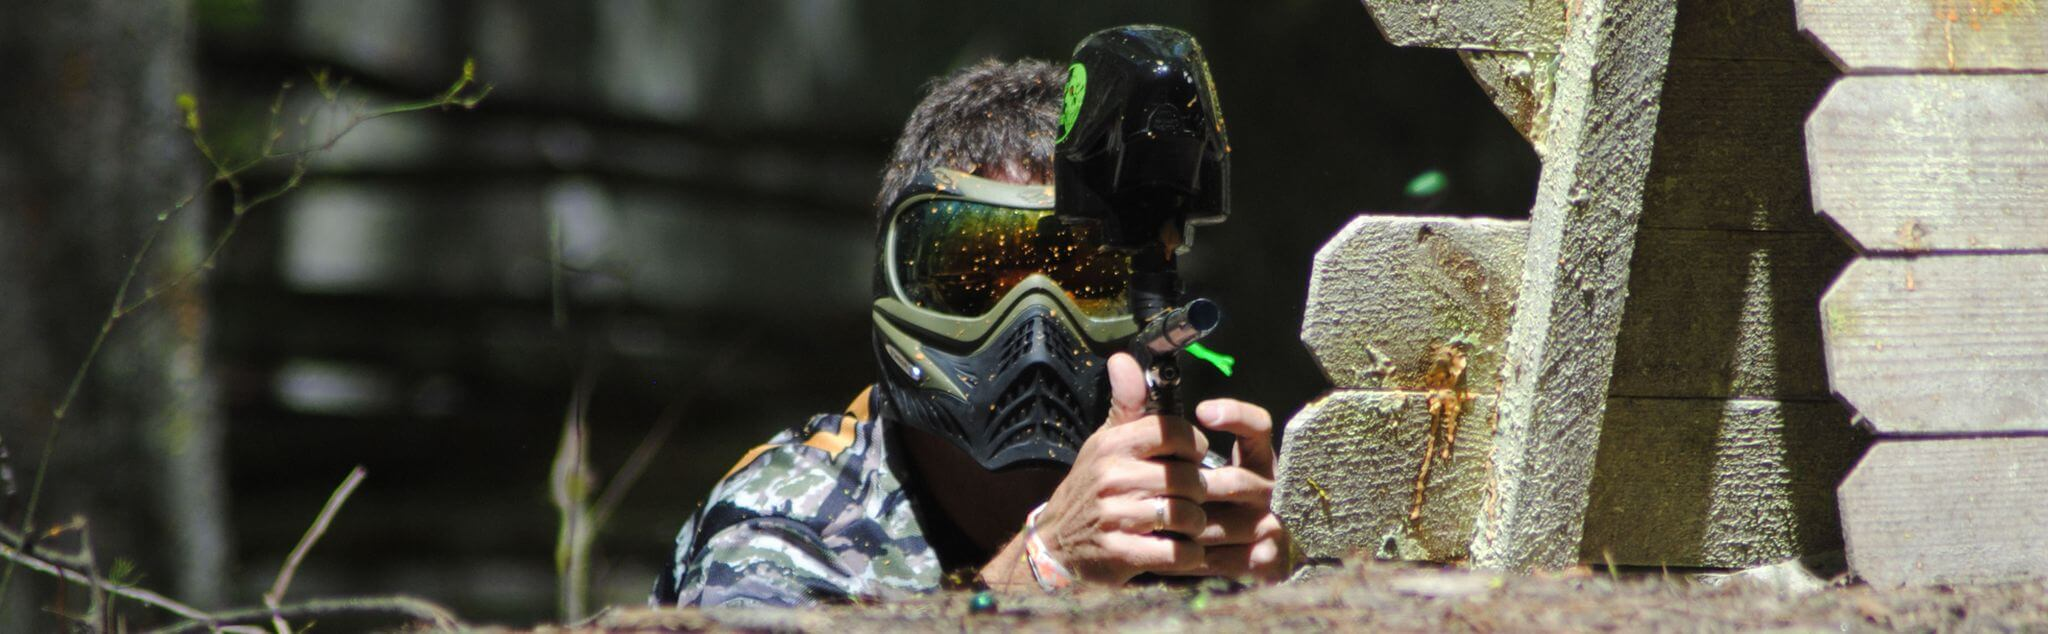 Paintball a Trento